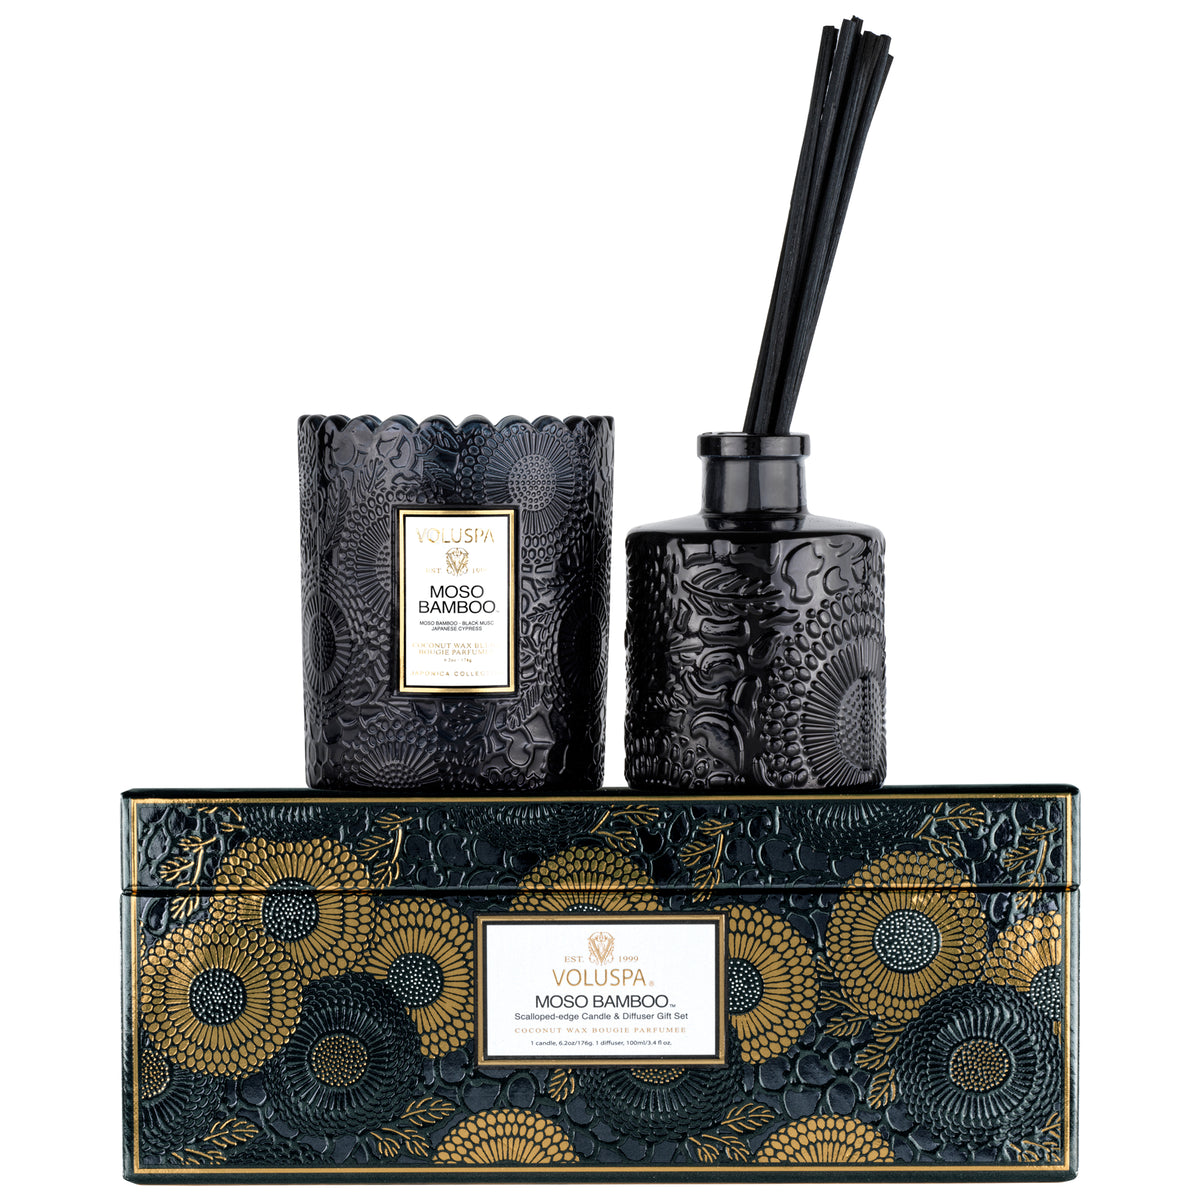 Moso Bamboo - Scalloped Edge Candle & Reed Diffuser Gift Set - 1